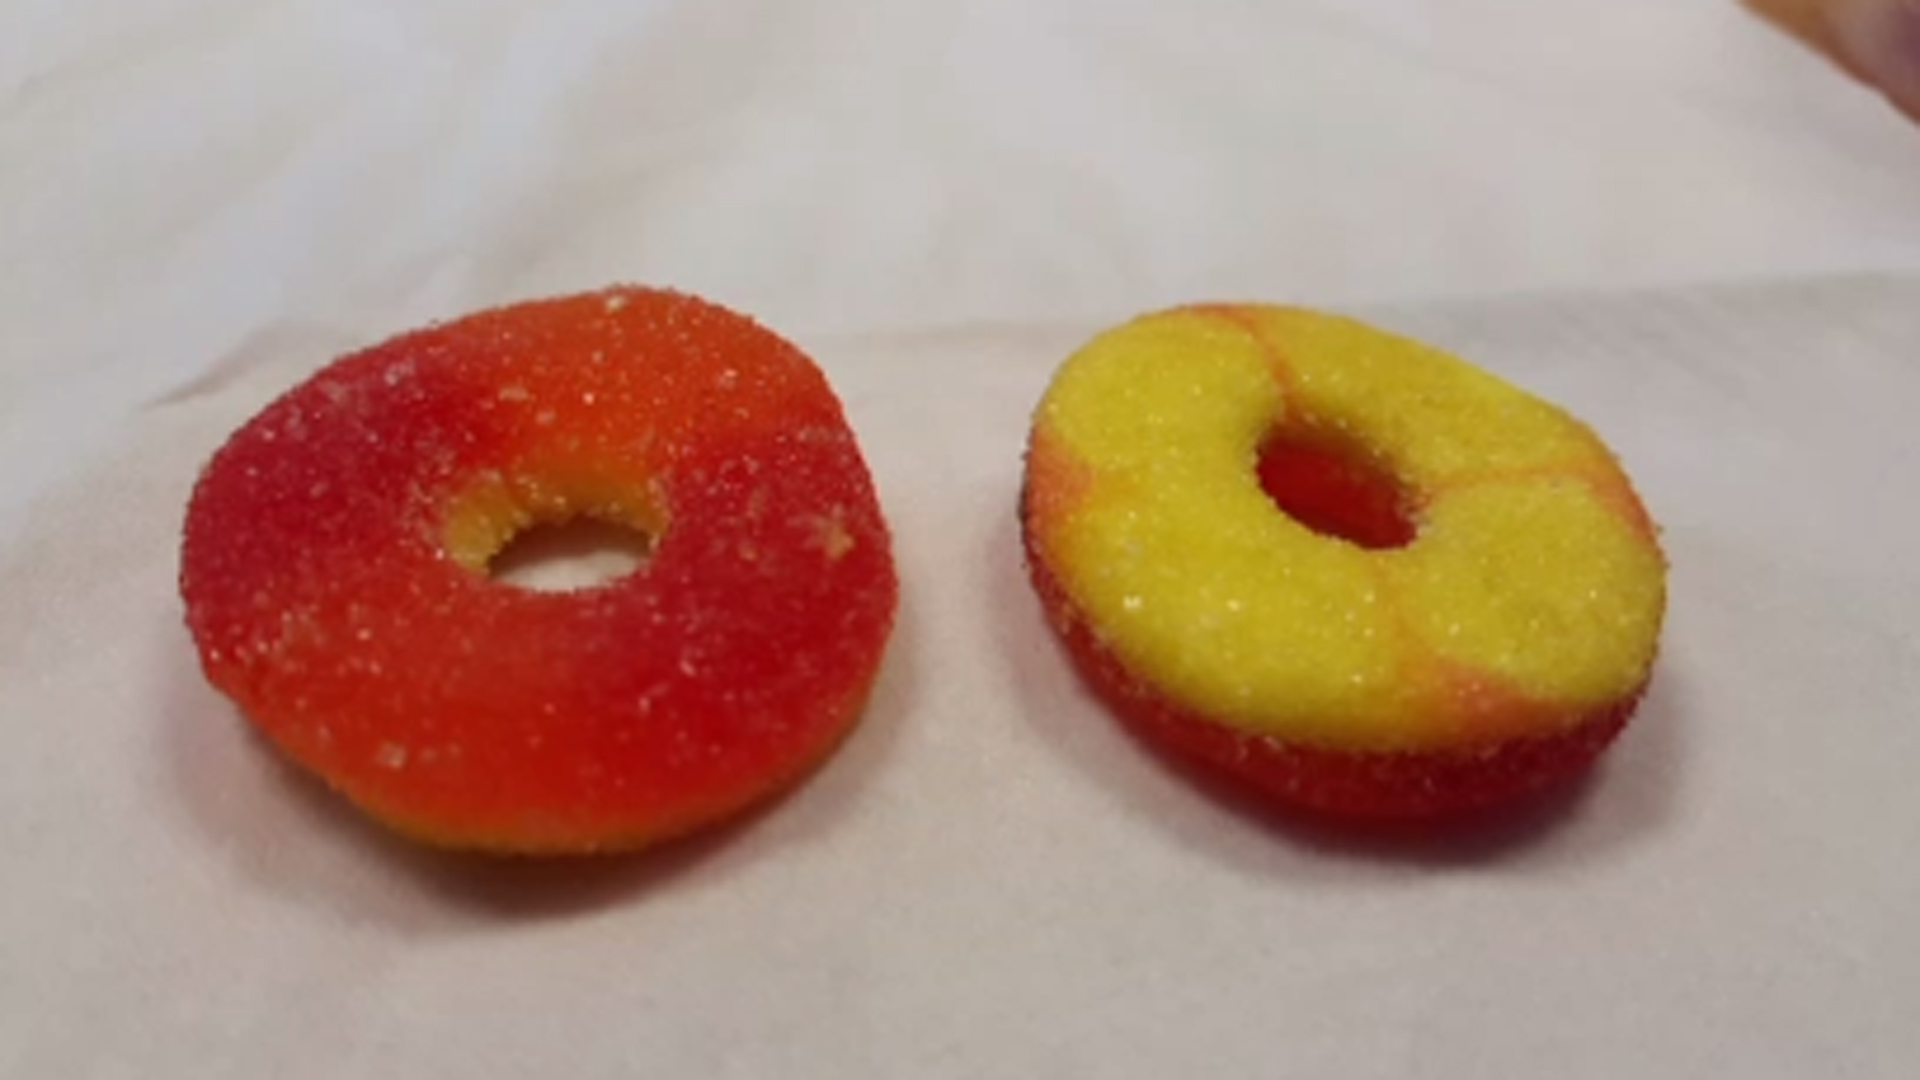 Marijuana-laced gummy candies are seen in a file photo. (Credit: San Francisco Department of Public Health via CNN)